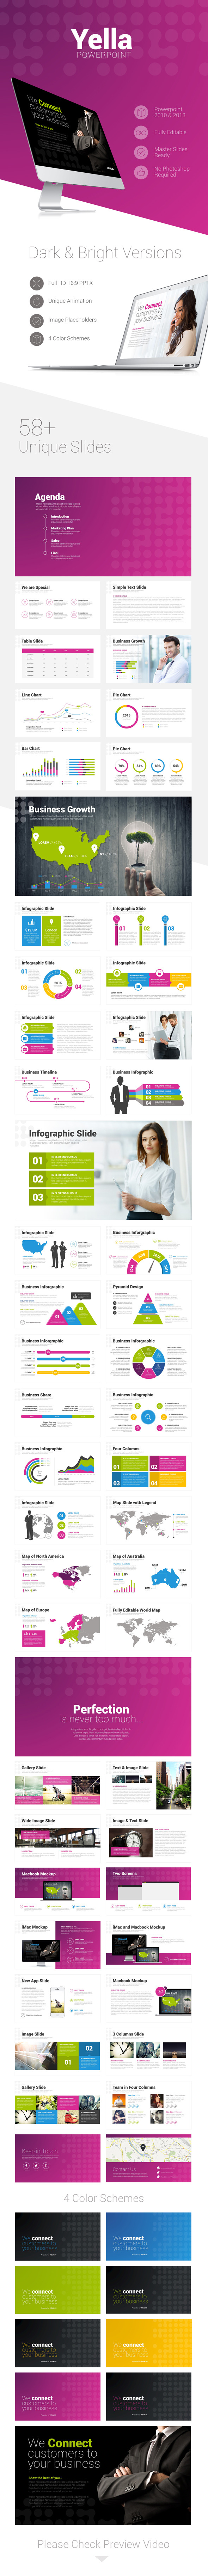 Yella Powerpoint Template - PowerPoint Templates Presentation Templates